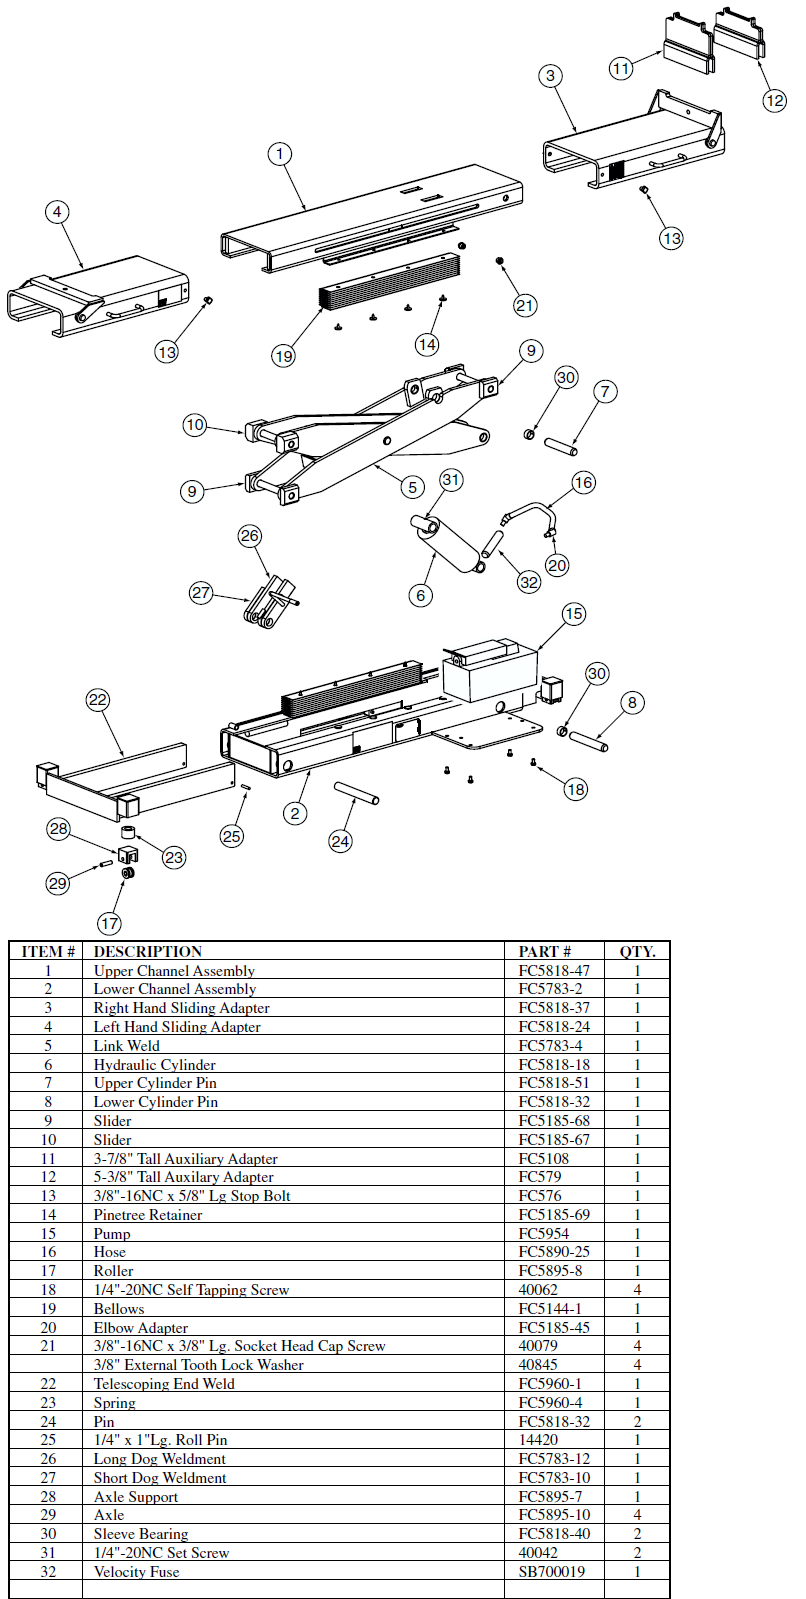 micros pos wiring diagram  micros  free engine image for